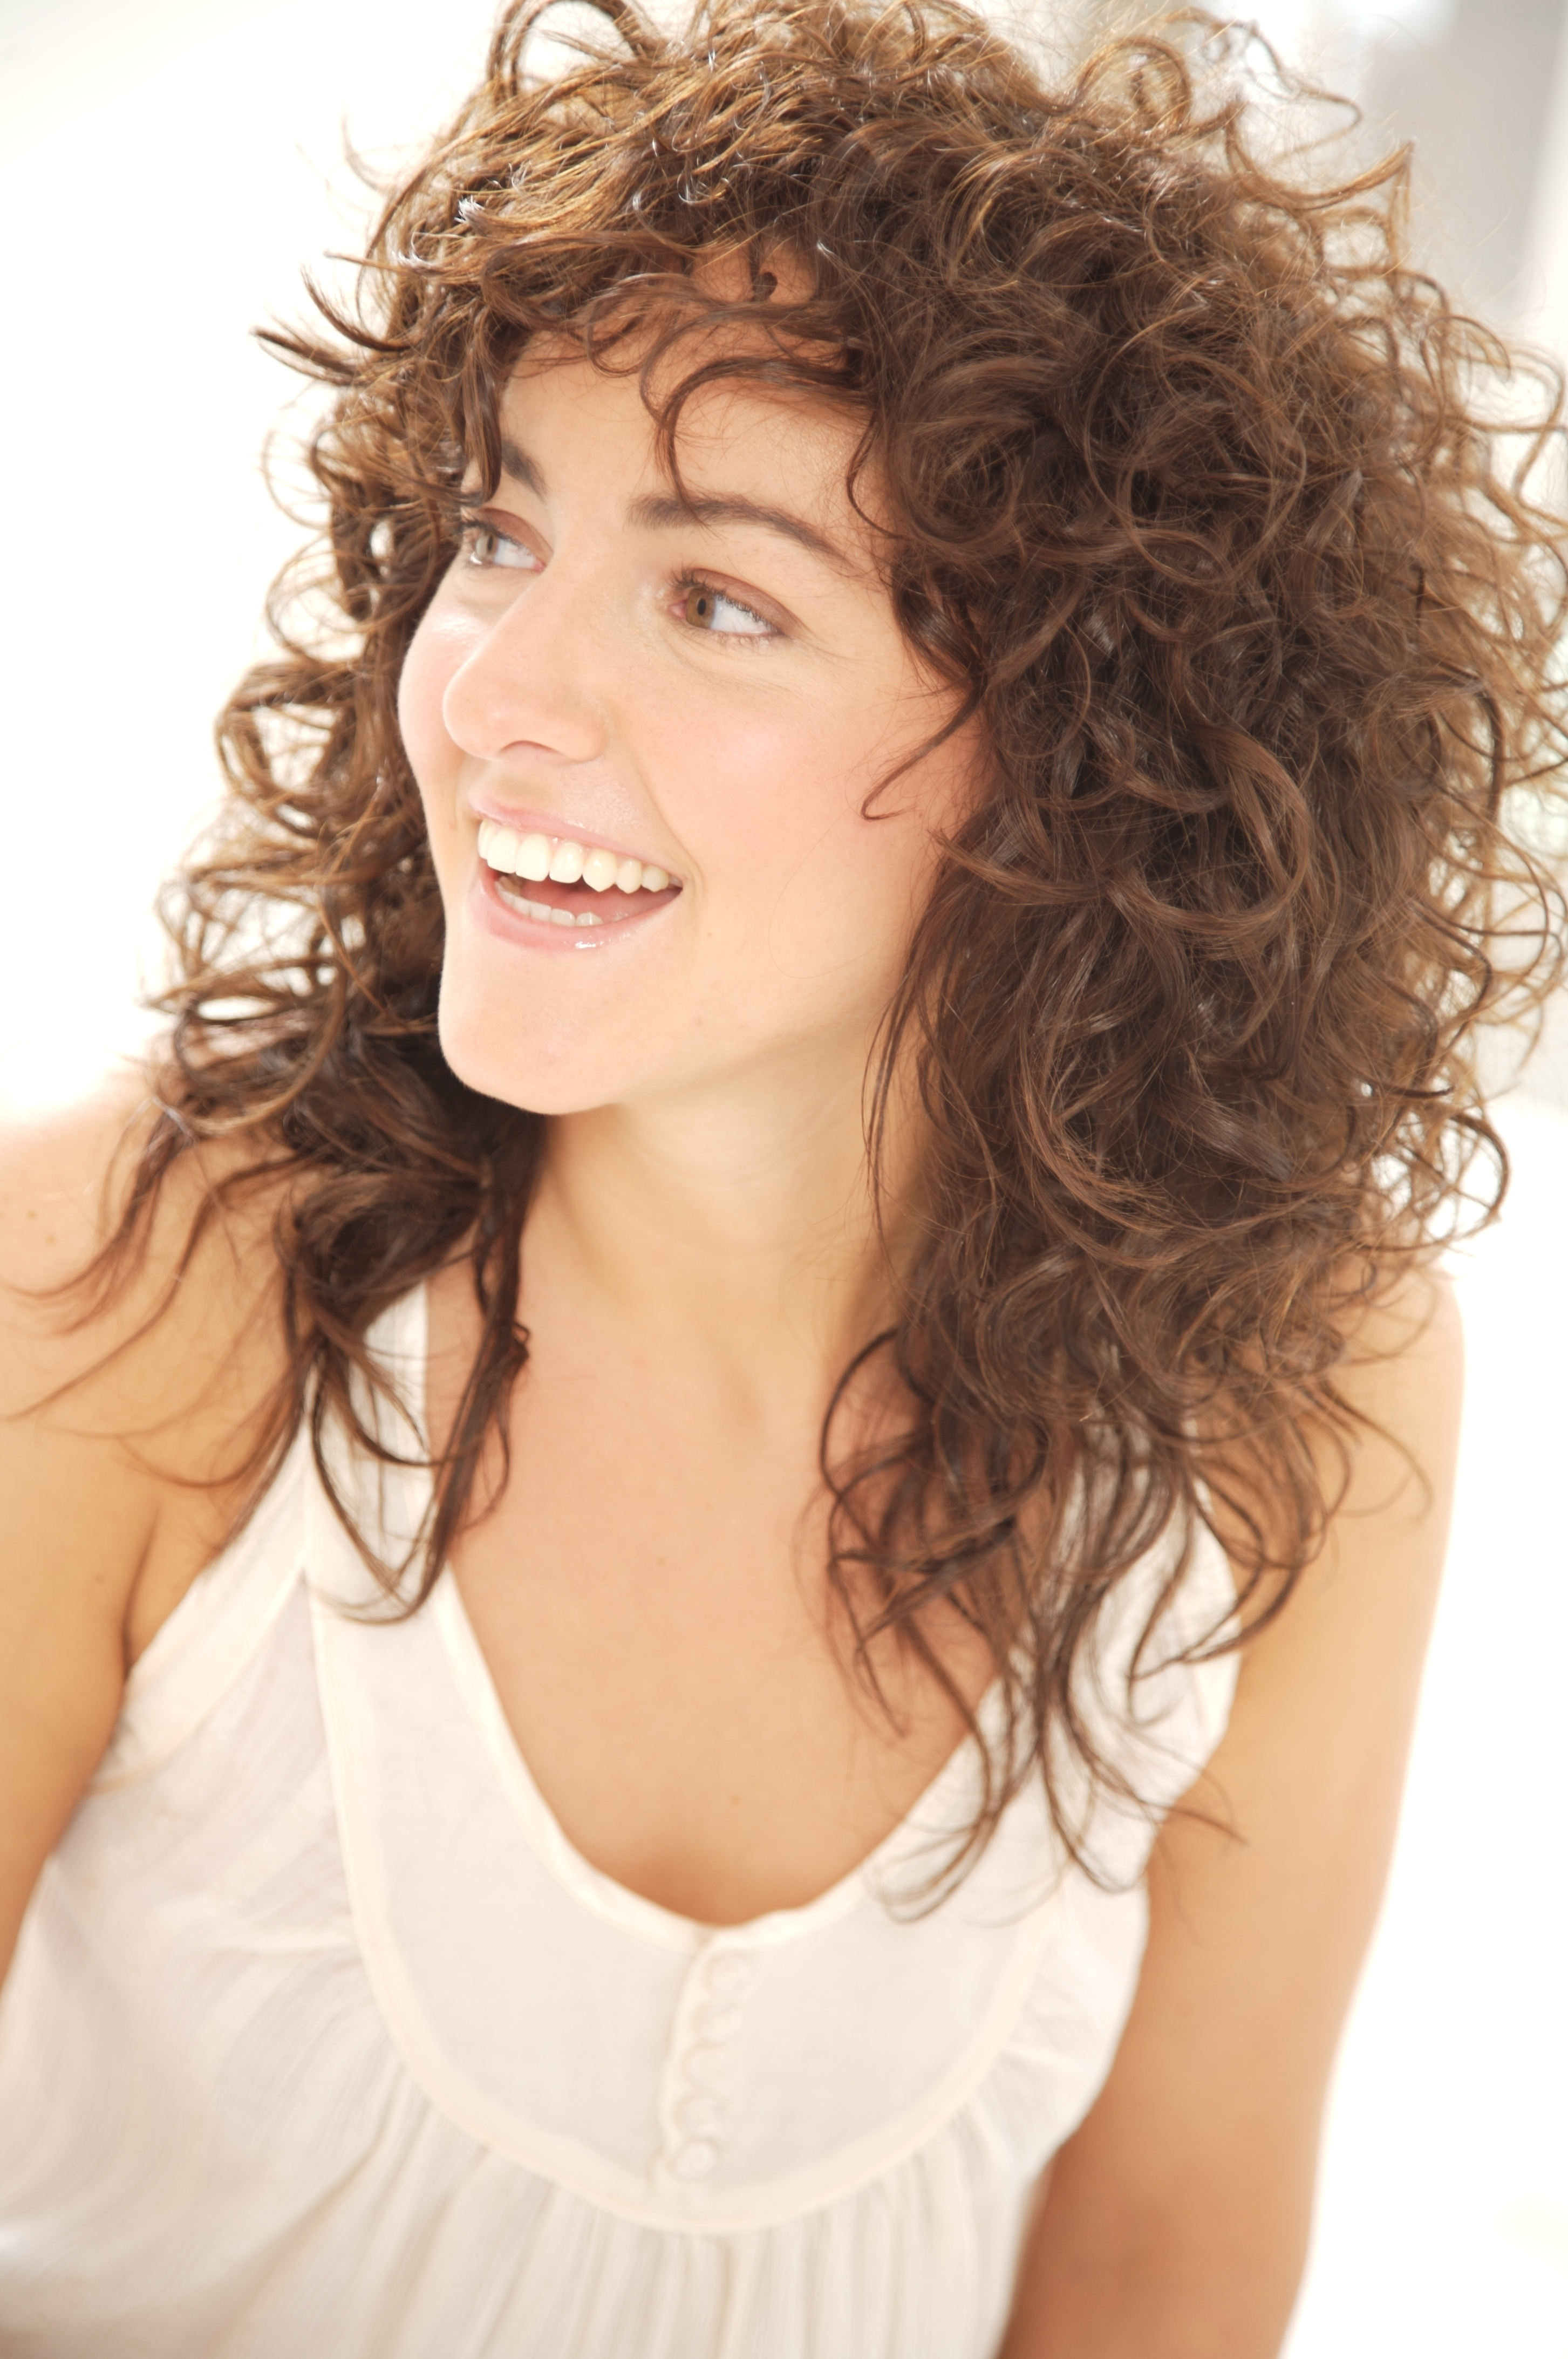 haircut styles for with curly hair 15 best of shaggy hairstyles for curly hair 8785